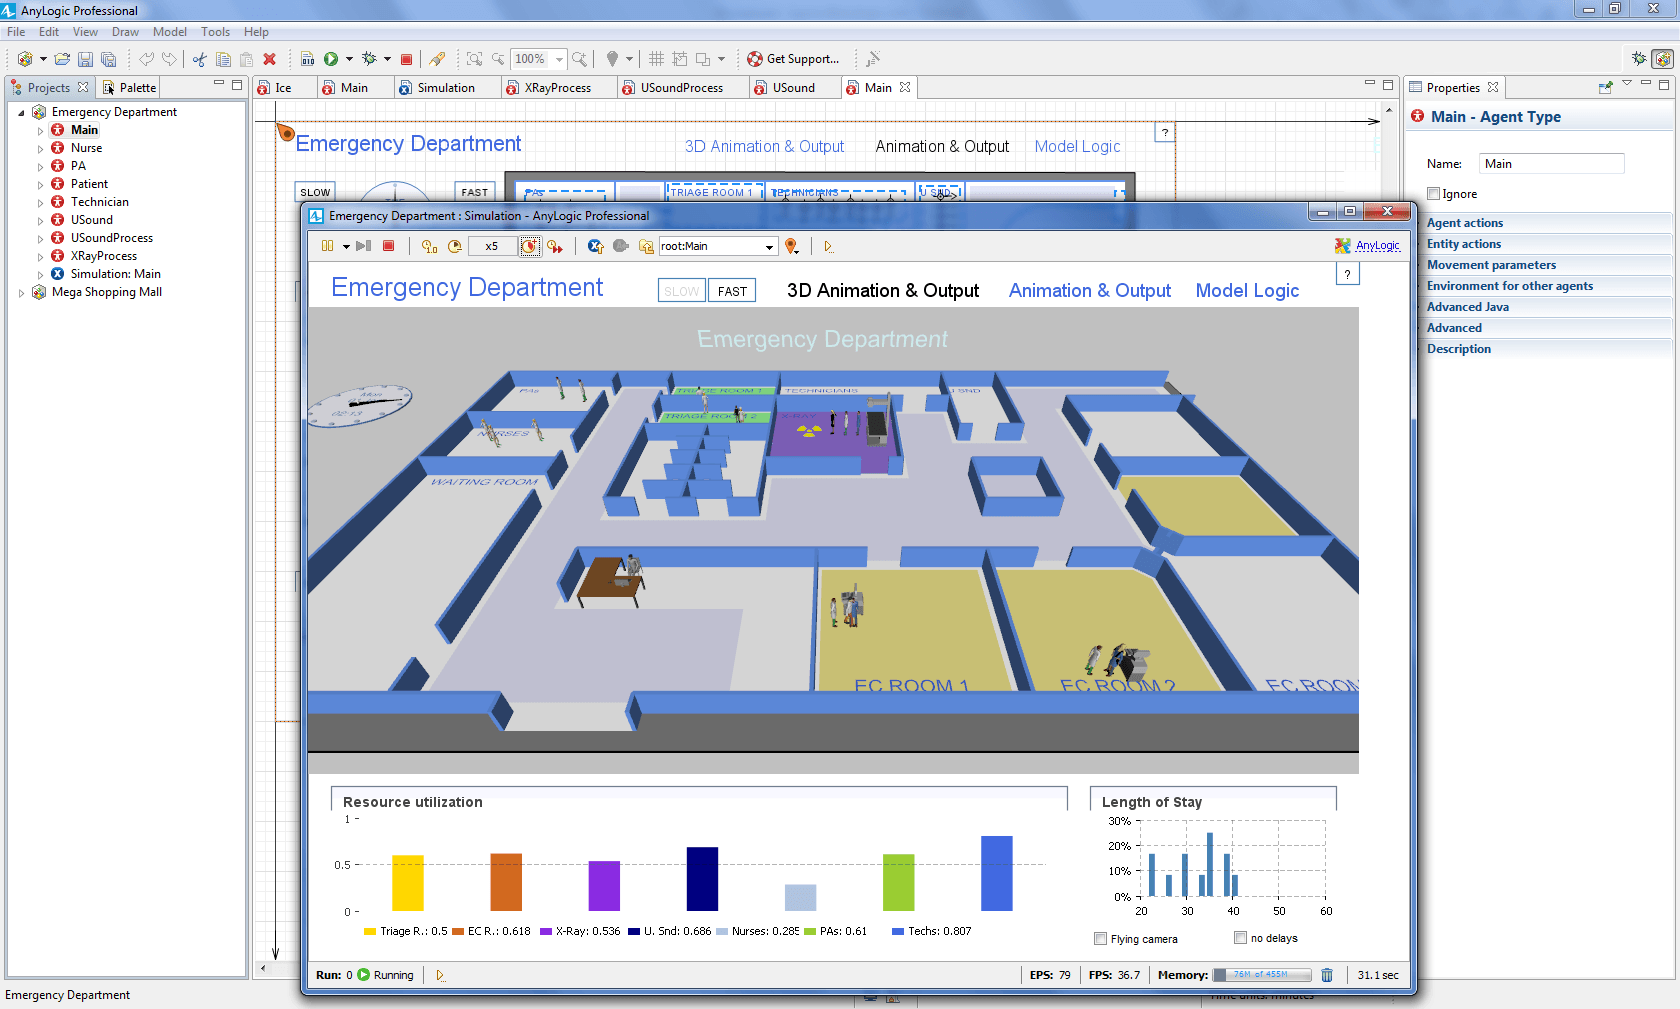 Emergency Department Simulation Model